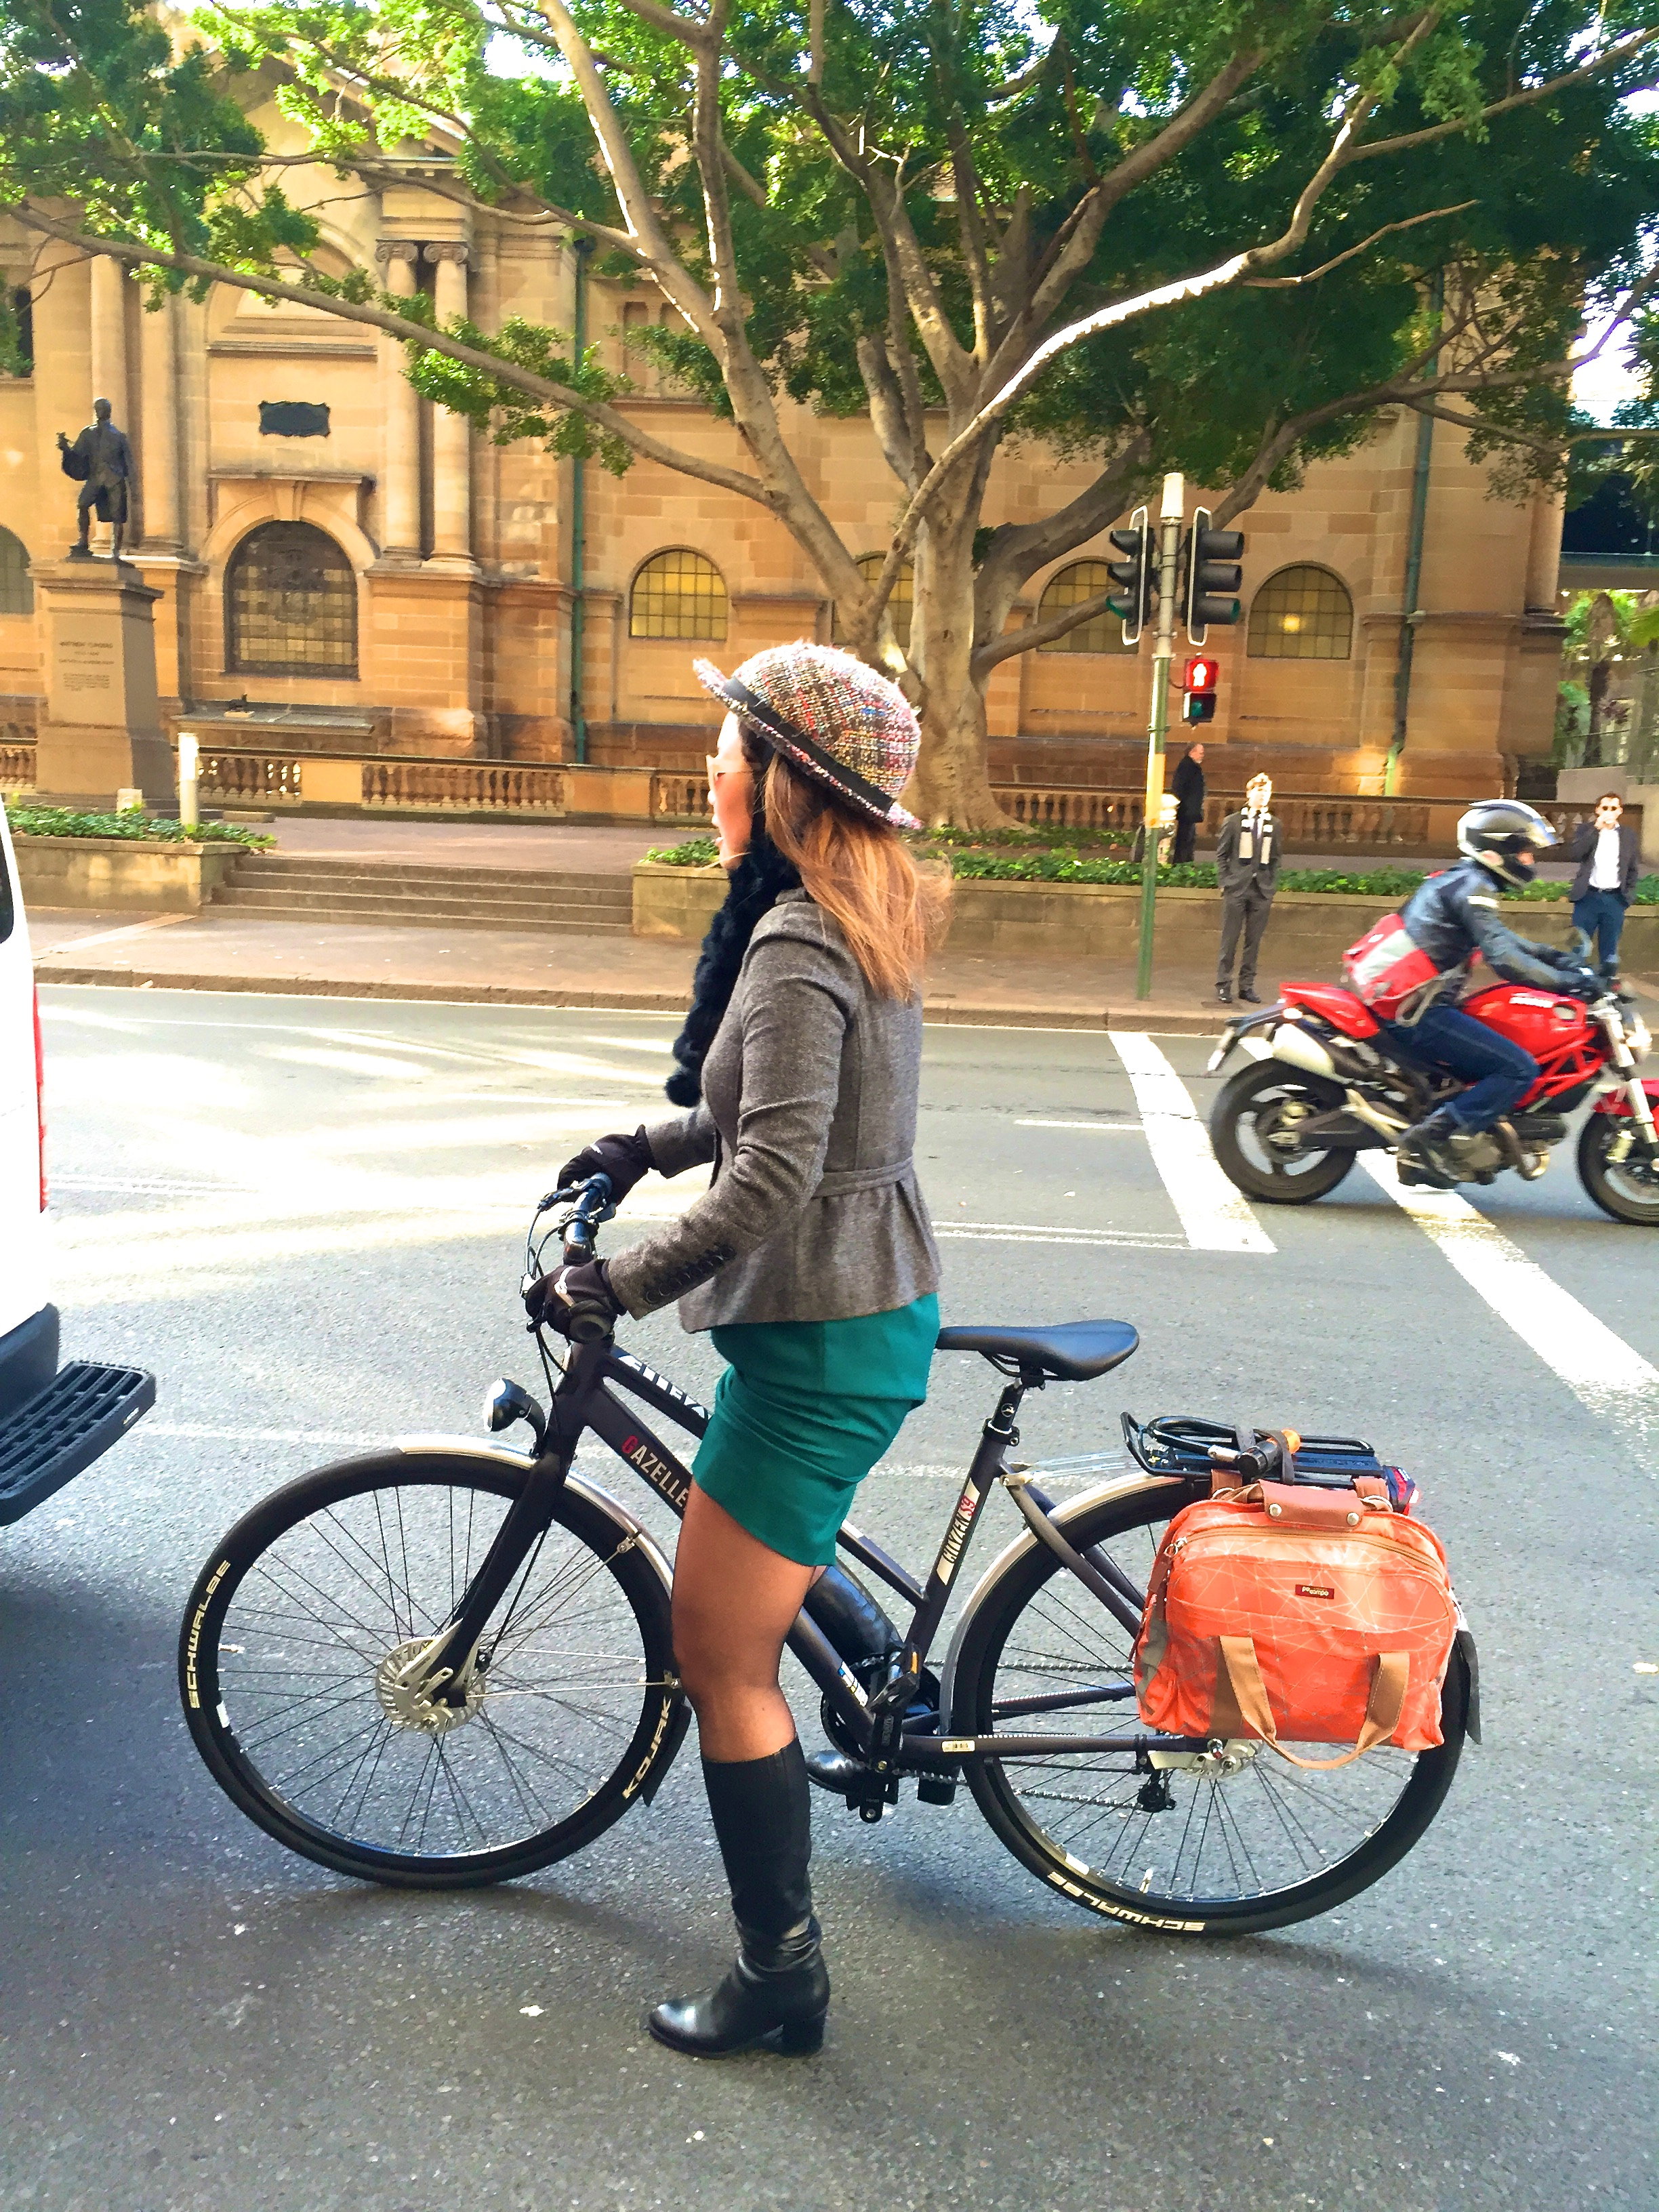 veloaporter po campo cycling with style stylish cycling bicycling in a  dress bicycling in heels bicycling 5a6a3ff40b3f